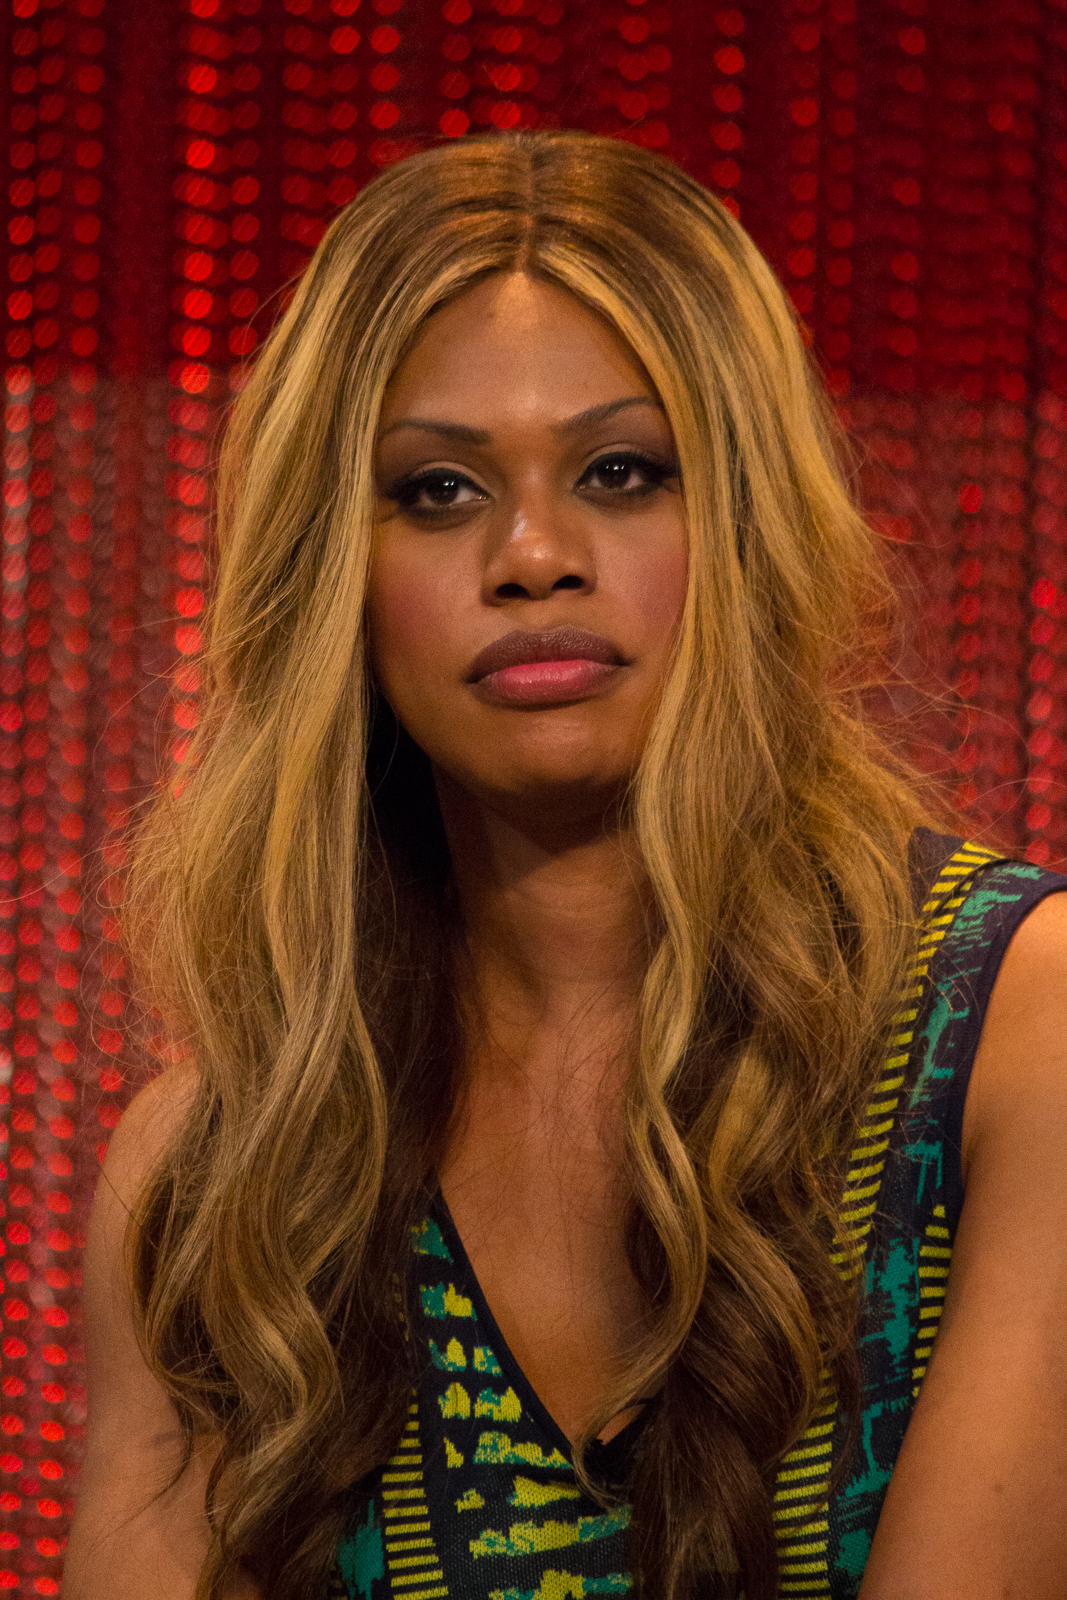 News: Celebrities React To Trump Trans Policy